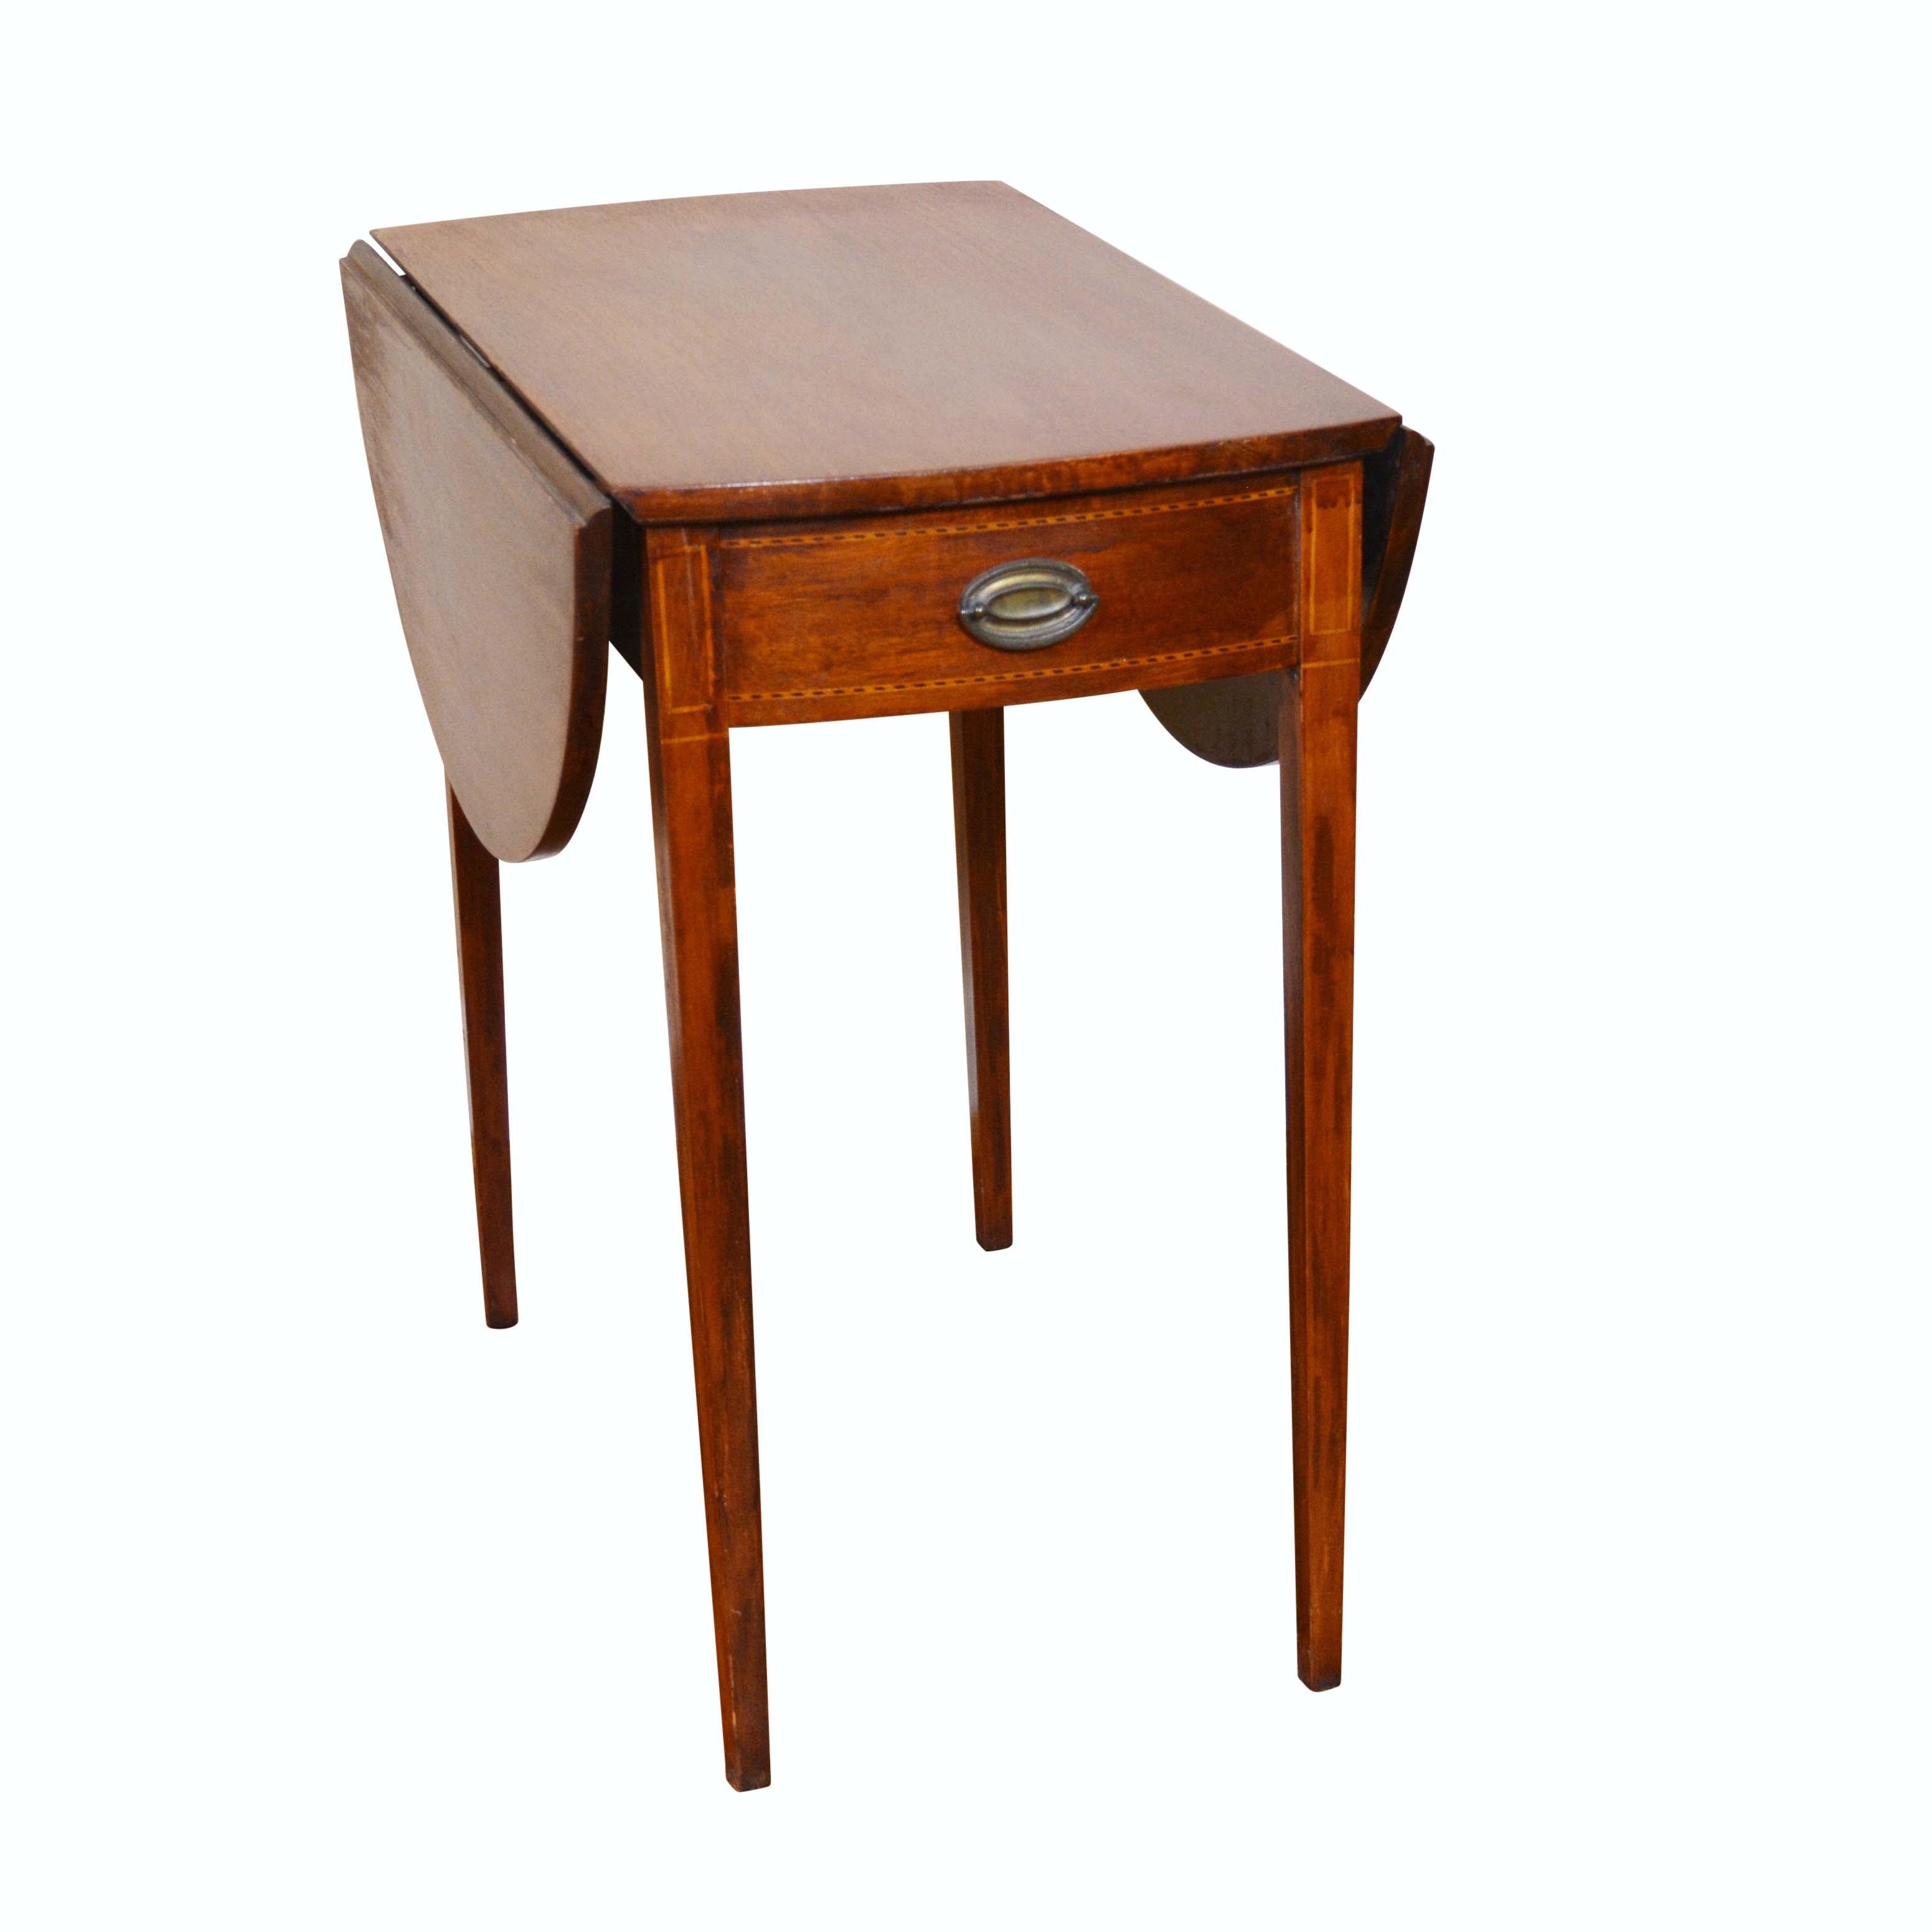 Vintage Federal Style Pembroke Table by Mersman